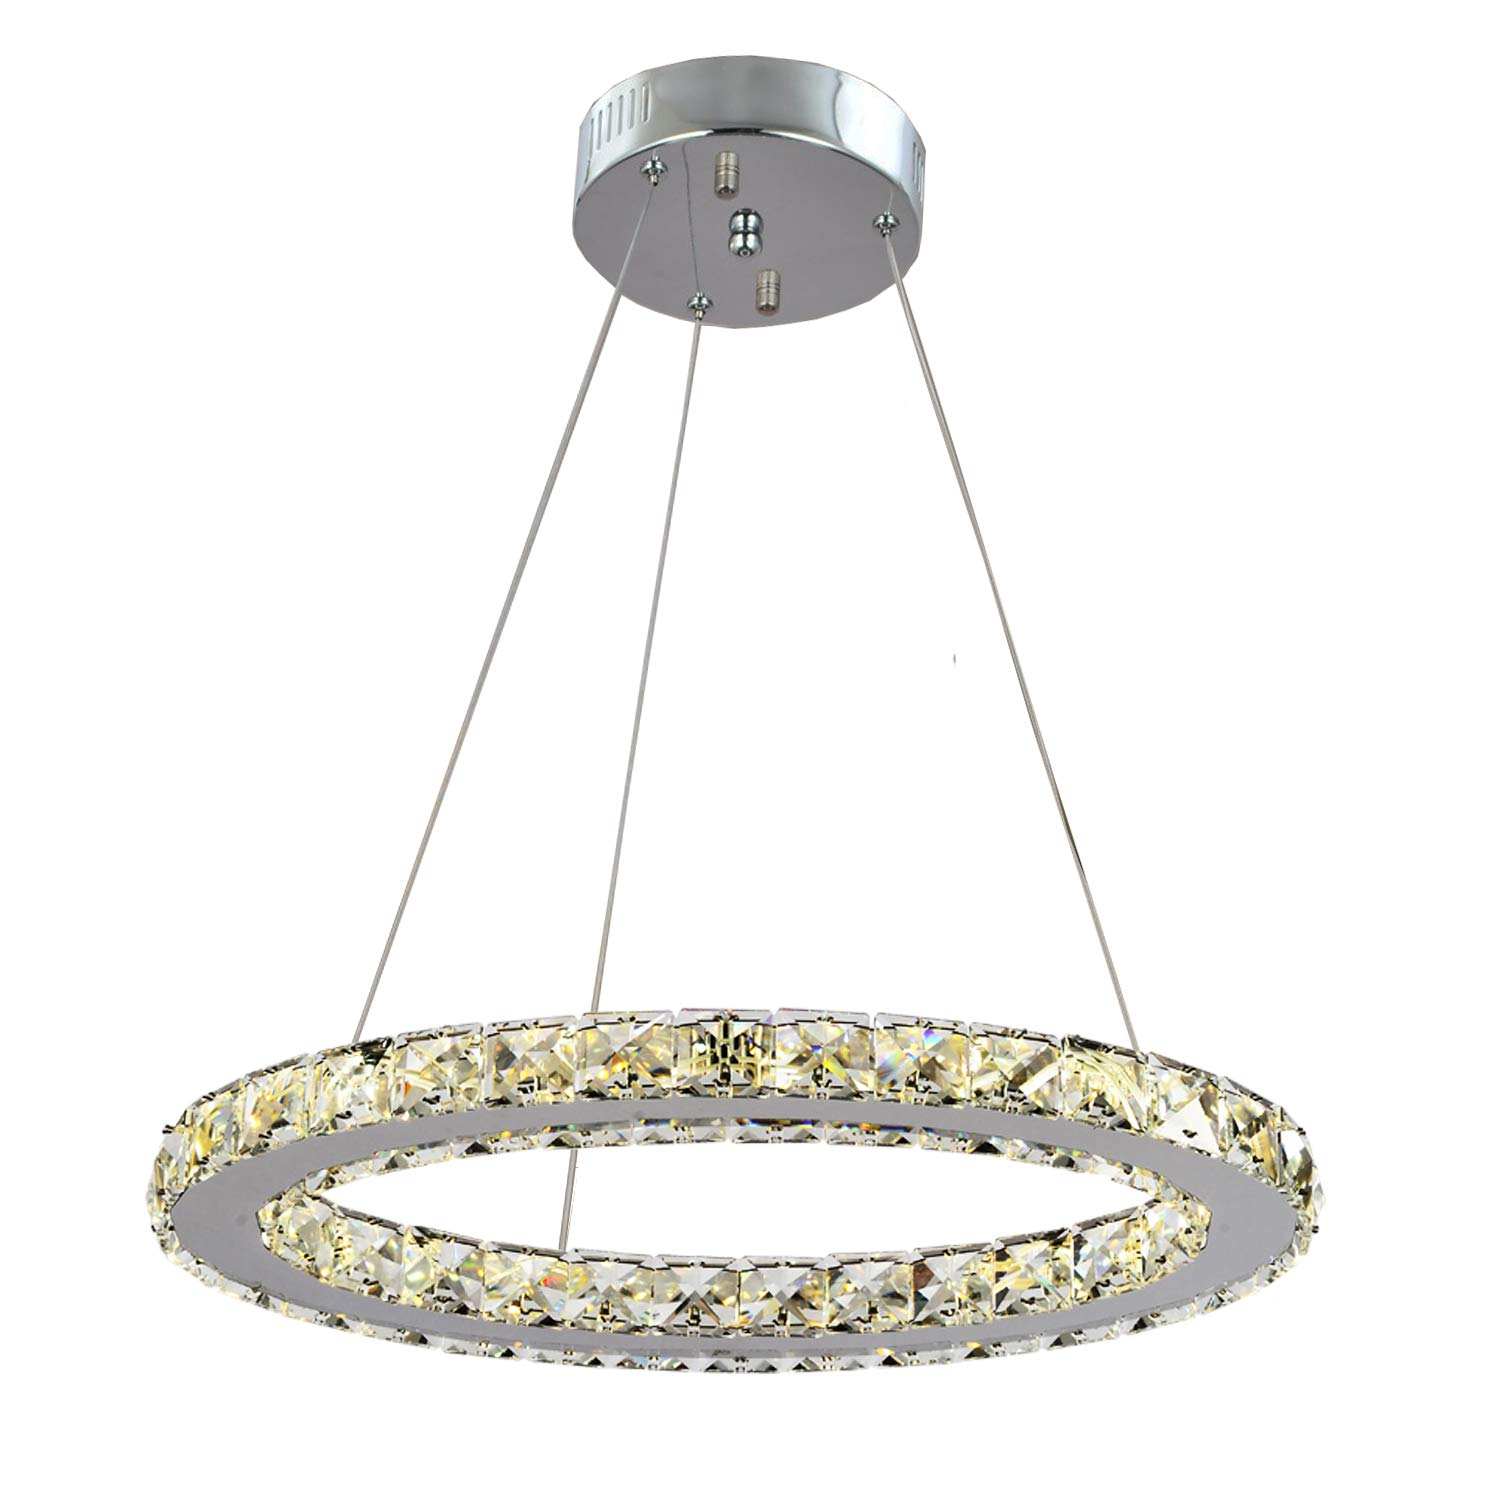 GDNS Modern Crystals Chandeliers,Ceiling Lights Fixtures,Pendant Lighting for Living Room Bedroom Restaurant Porch Dining Room,One Rings (One ring,Dia 30cm)